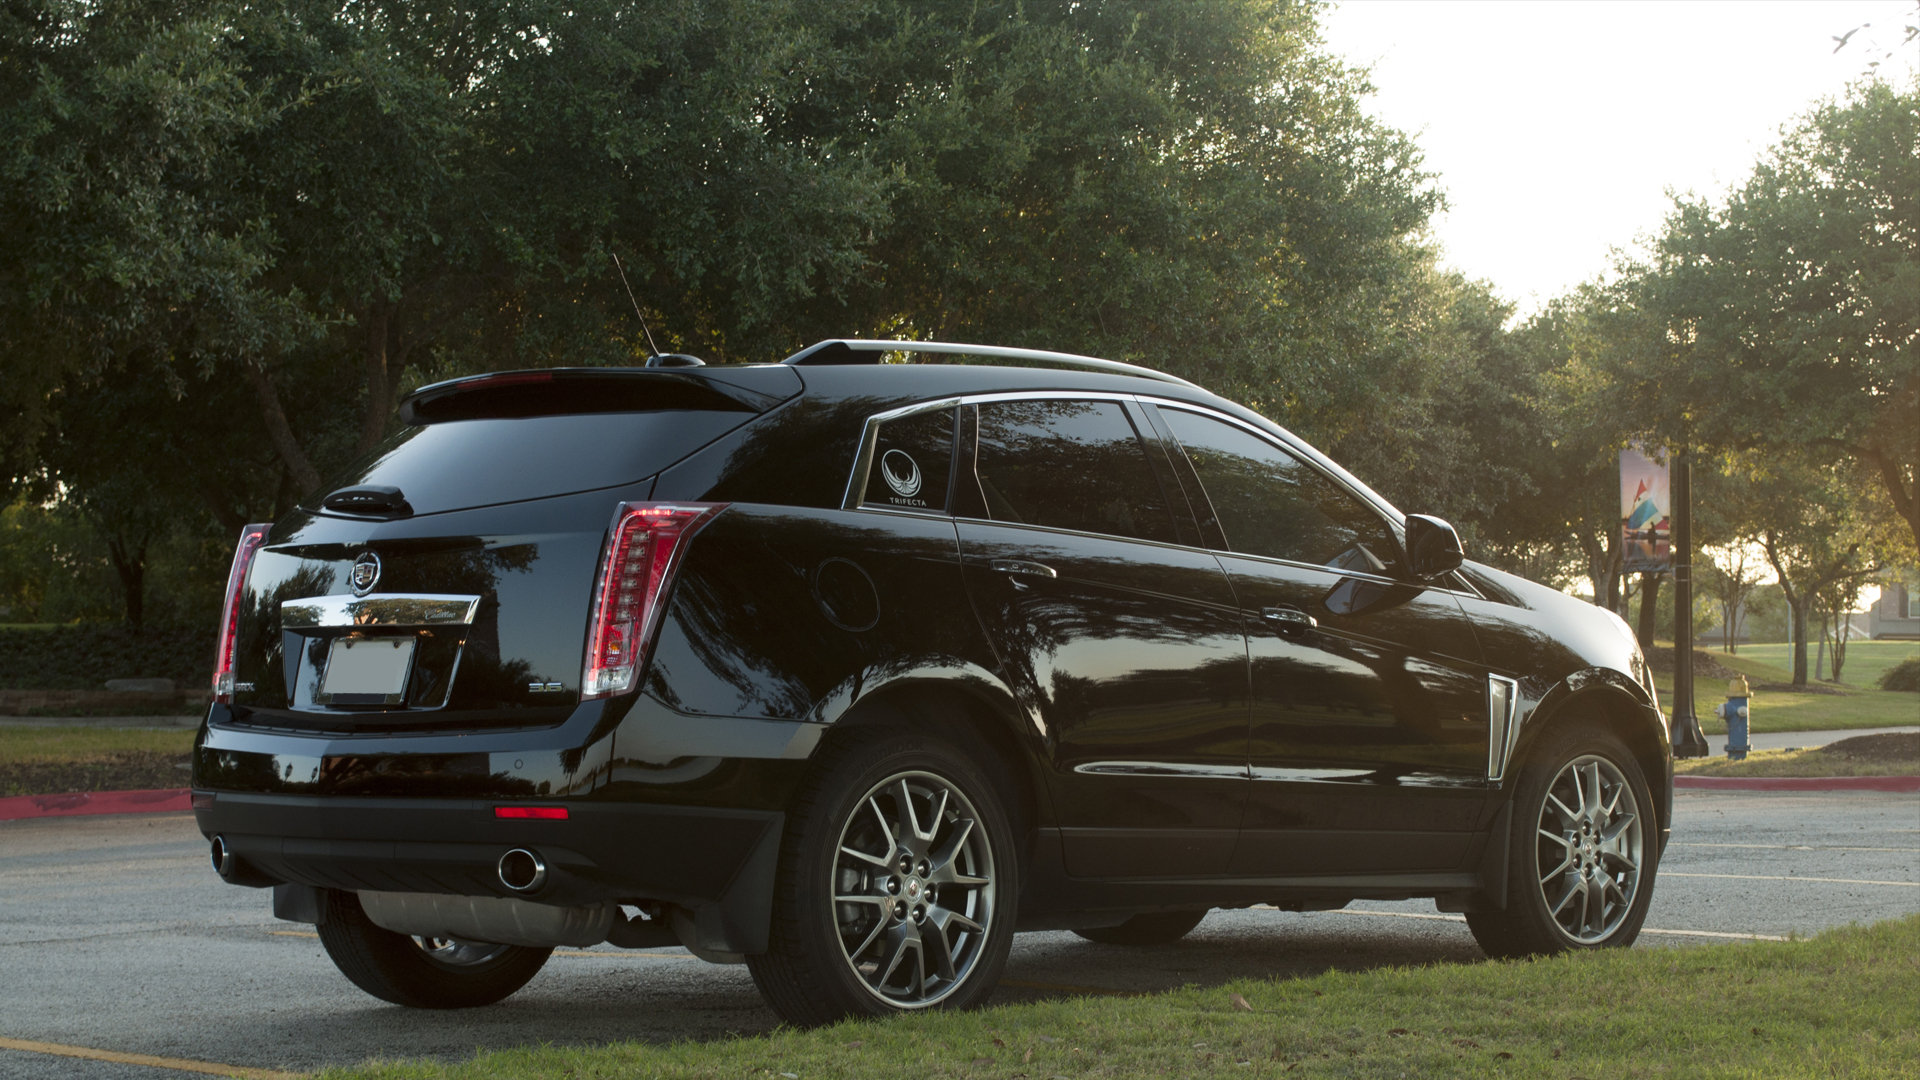 Product Review: 2012--2016 Cadillac SRX - 3.6L - Advantage